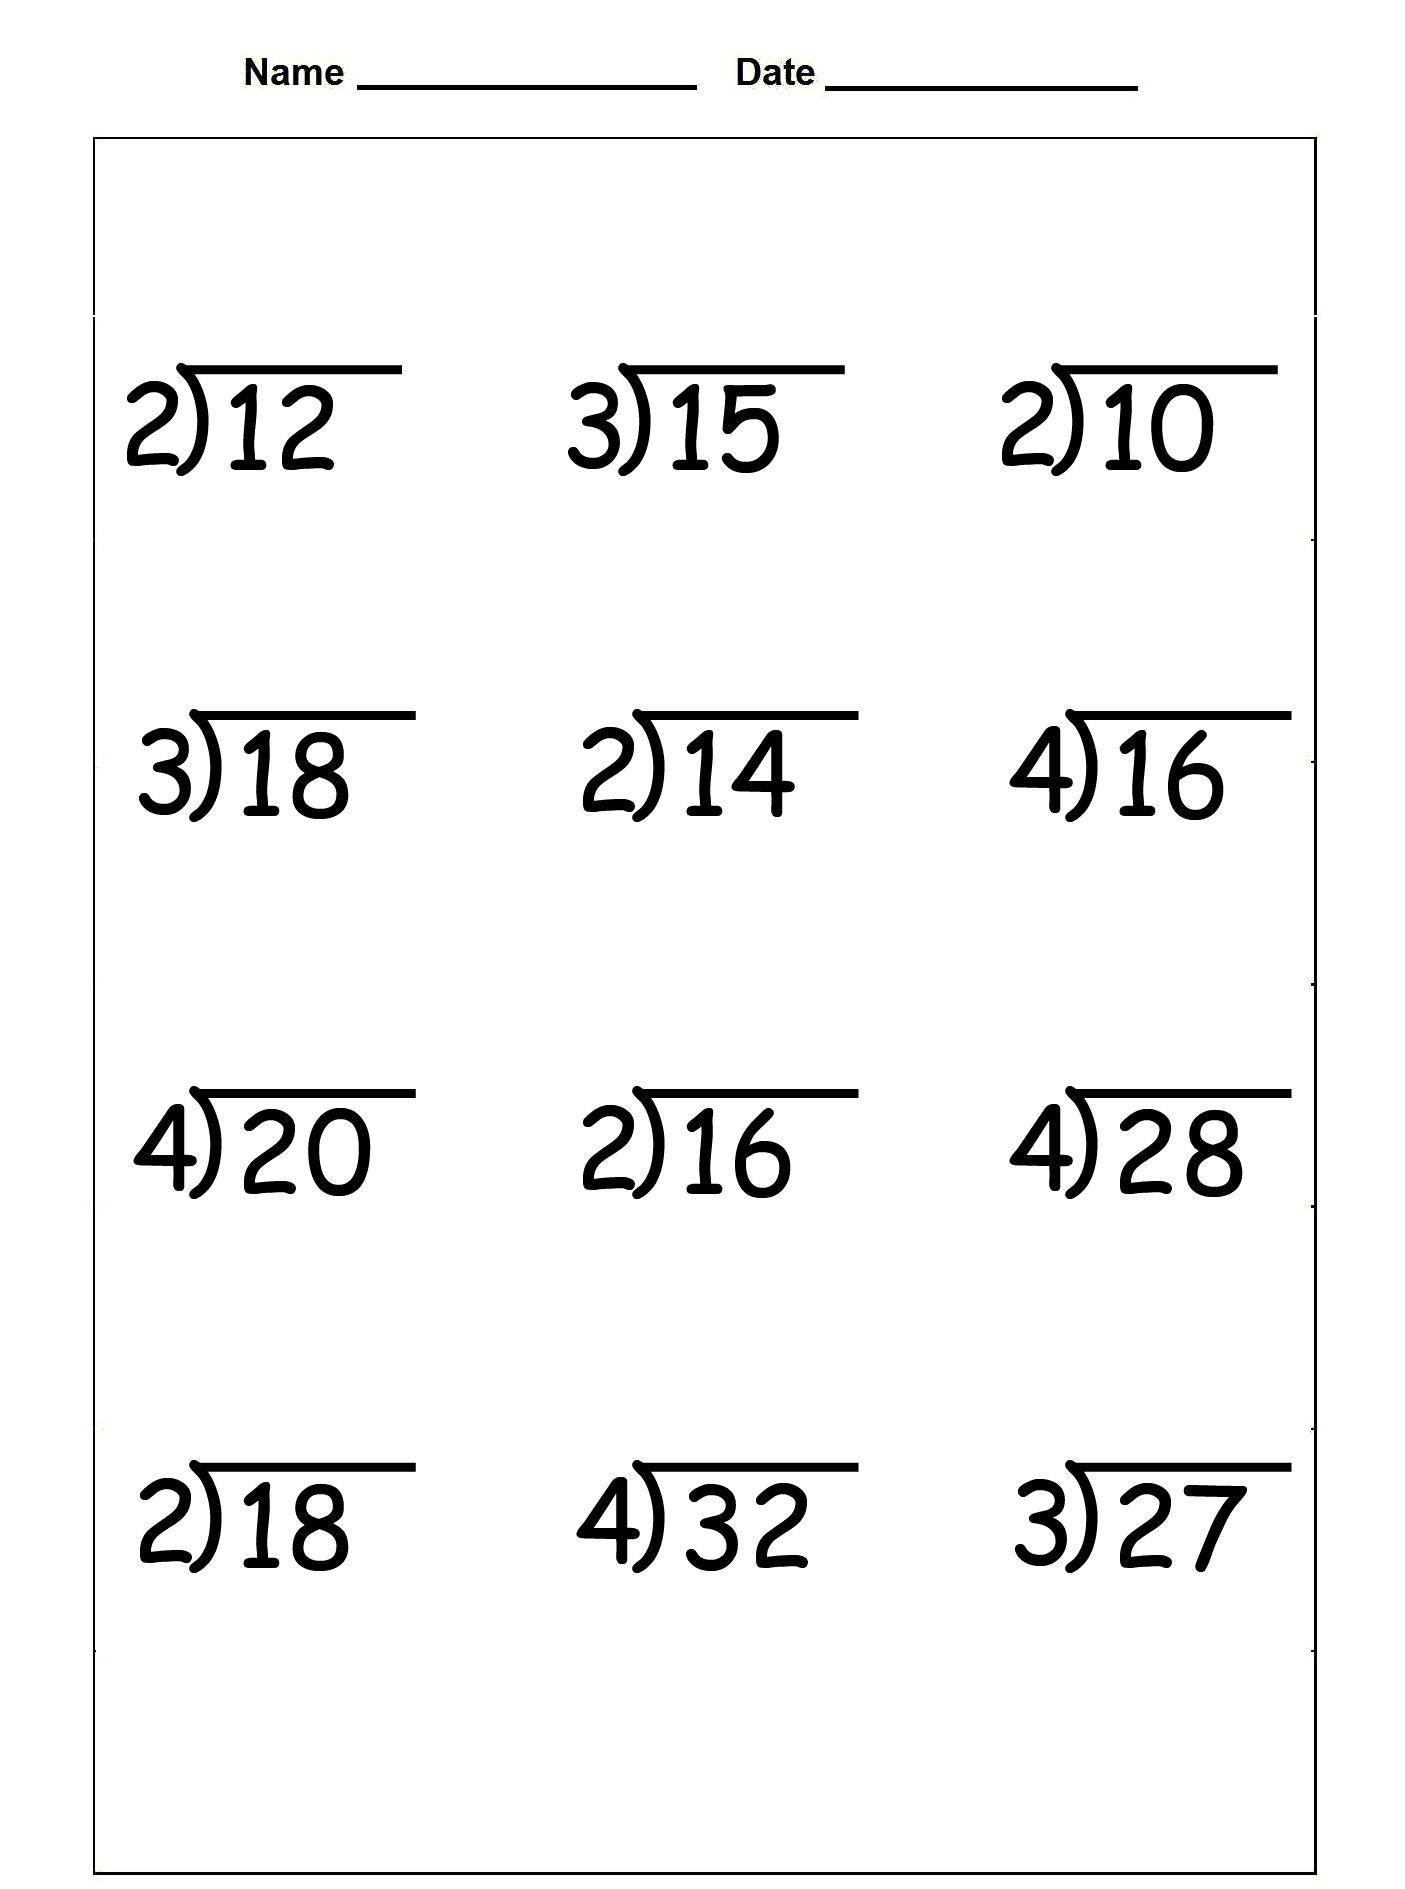 medium resolution of Long Division Worksheets Printable 3rd Grade   Printable Worksheets and  Activities for Teachers